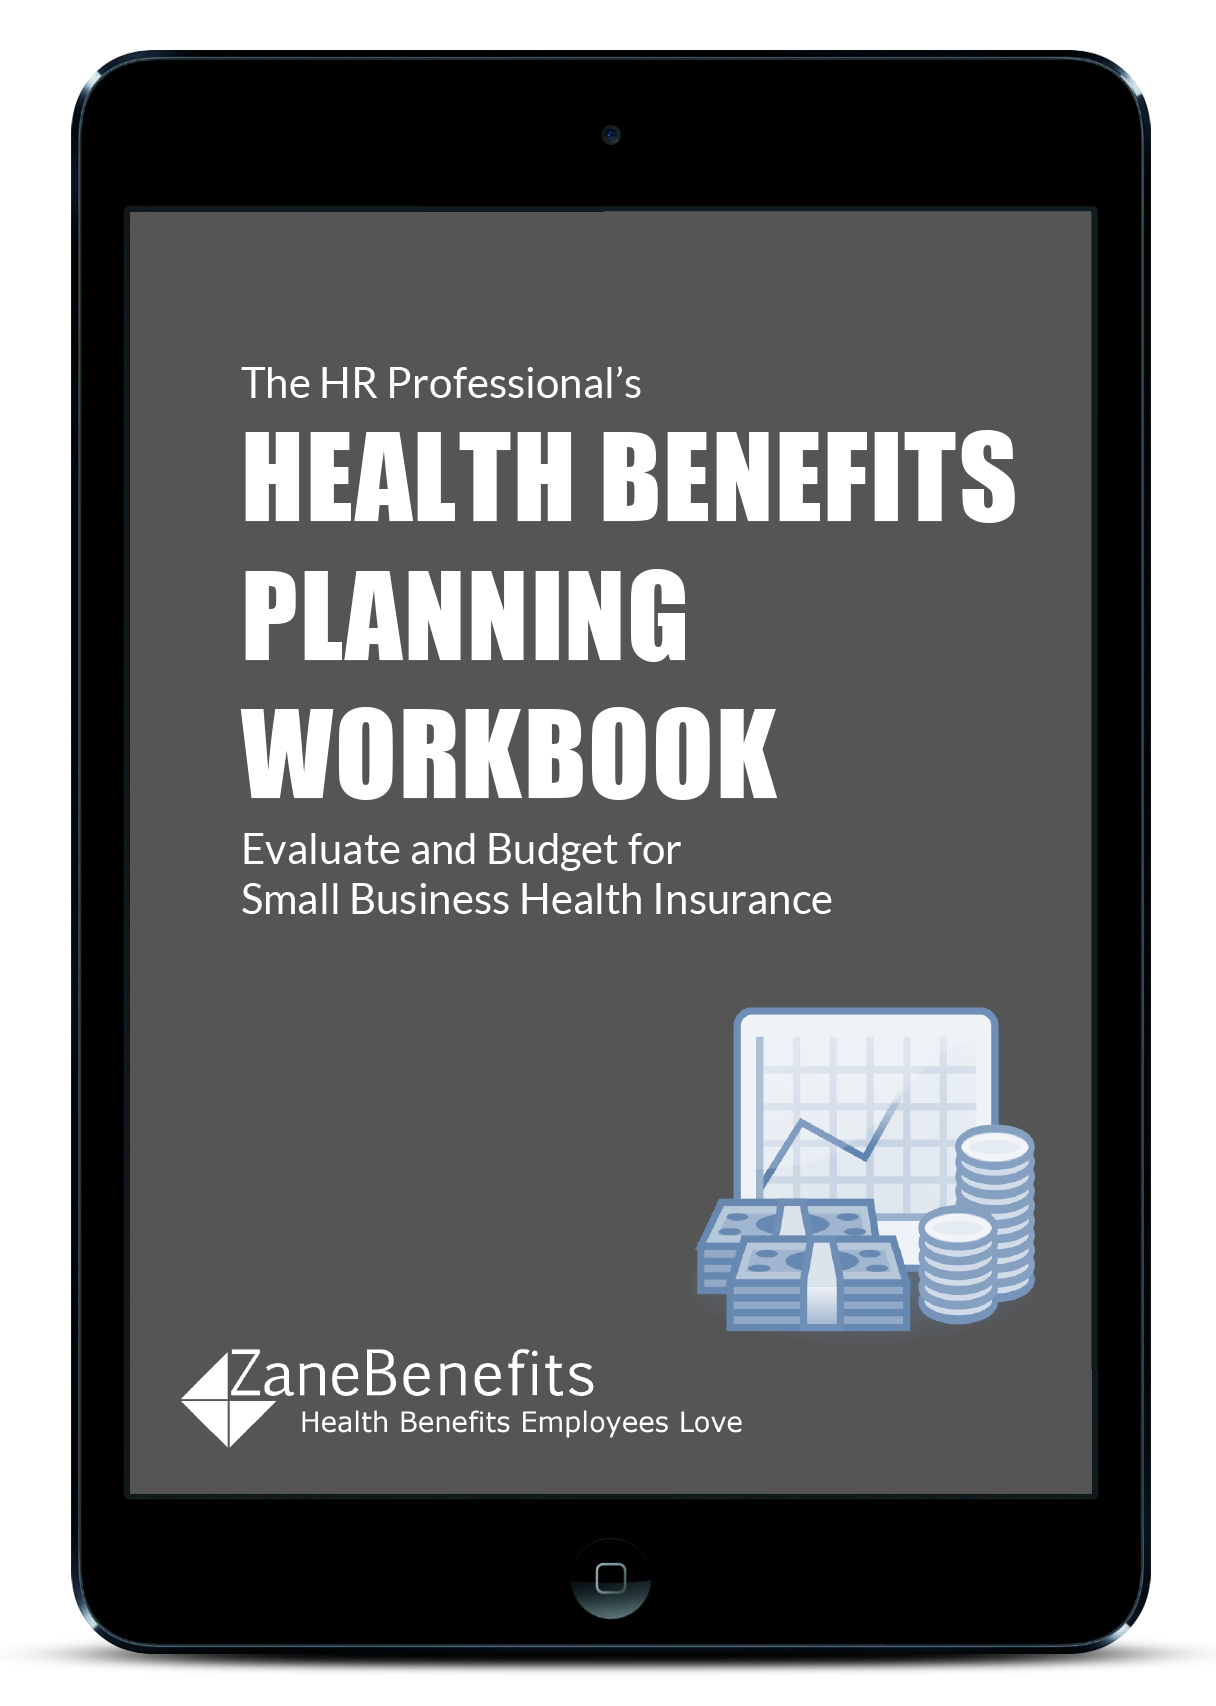 The HR Professional's Health Benefits Planning Workbook